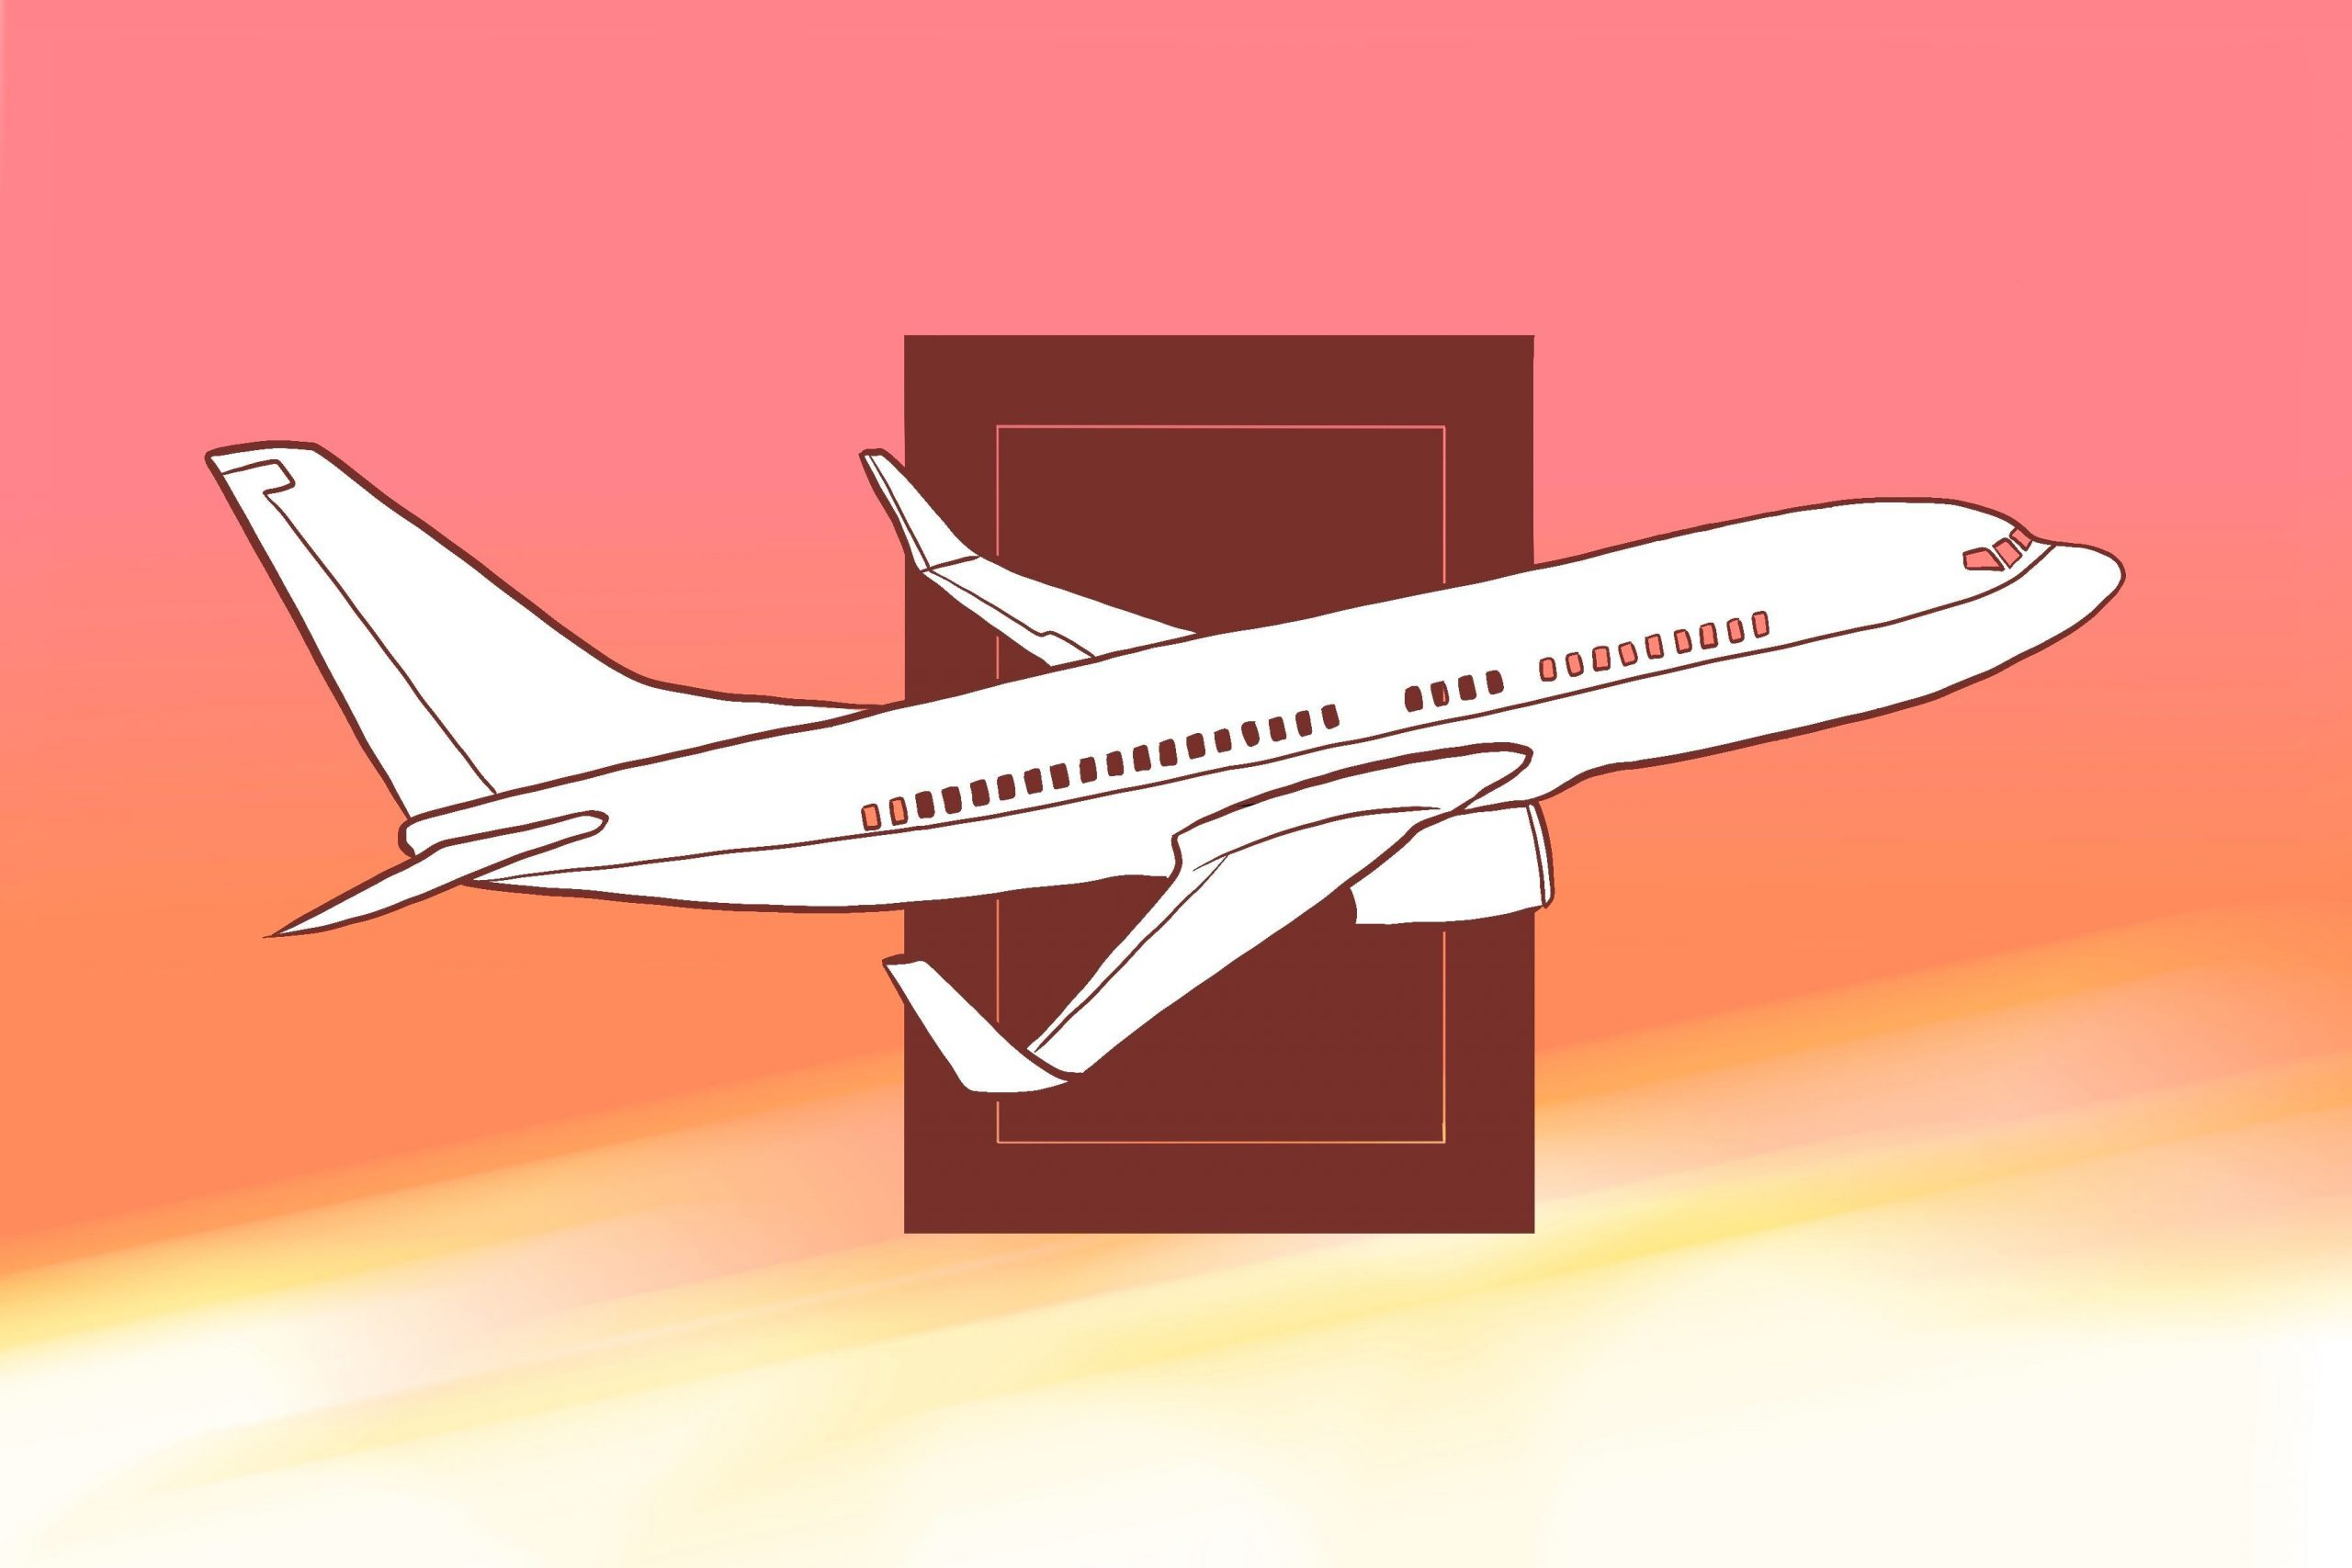 In an article about flight options, an illustration by June Le